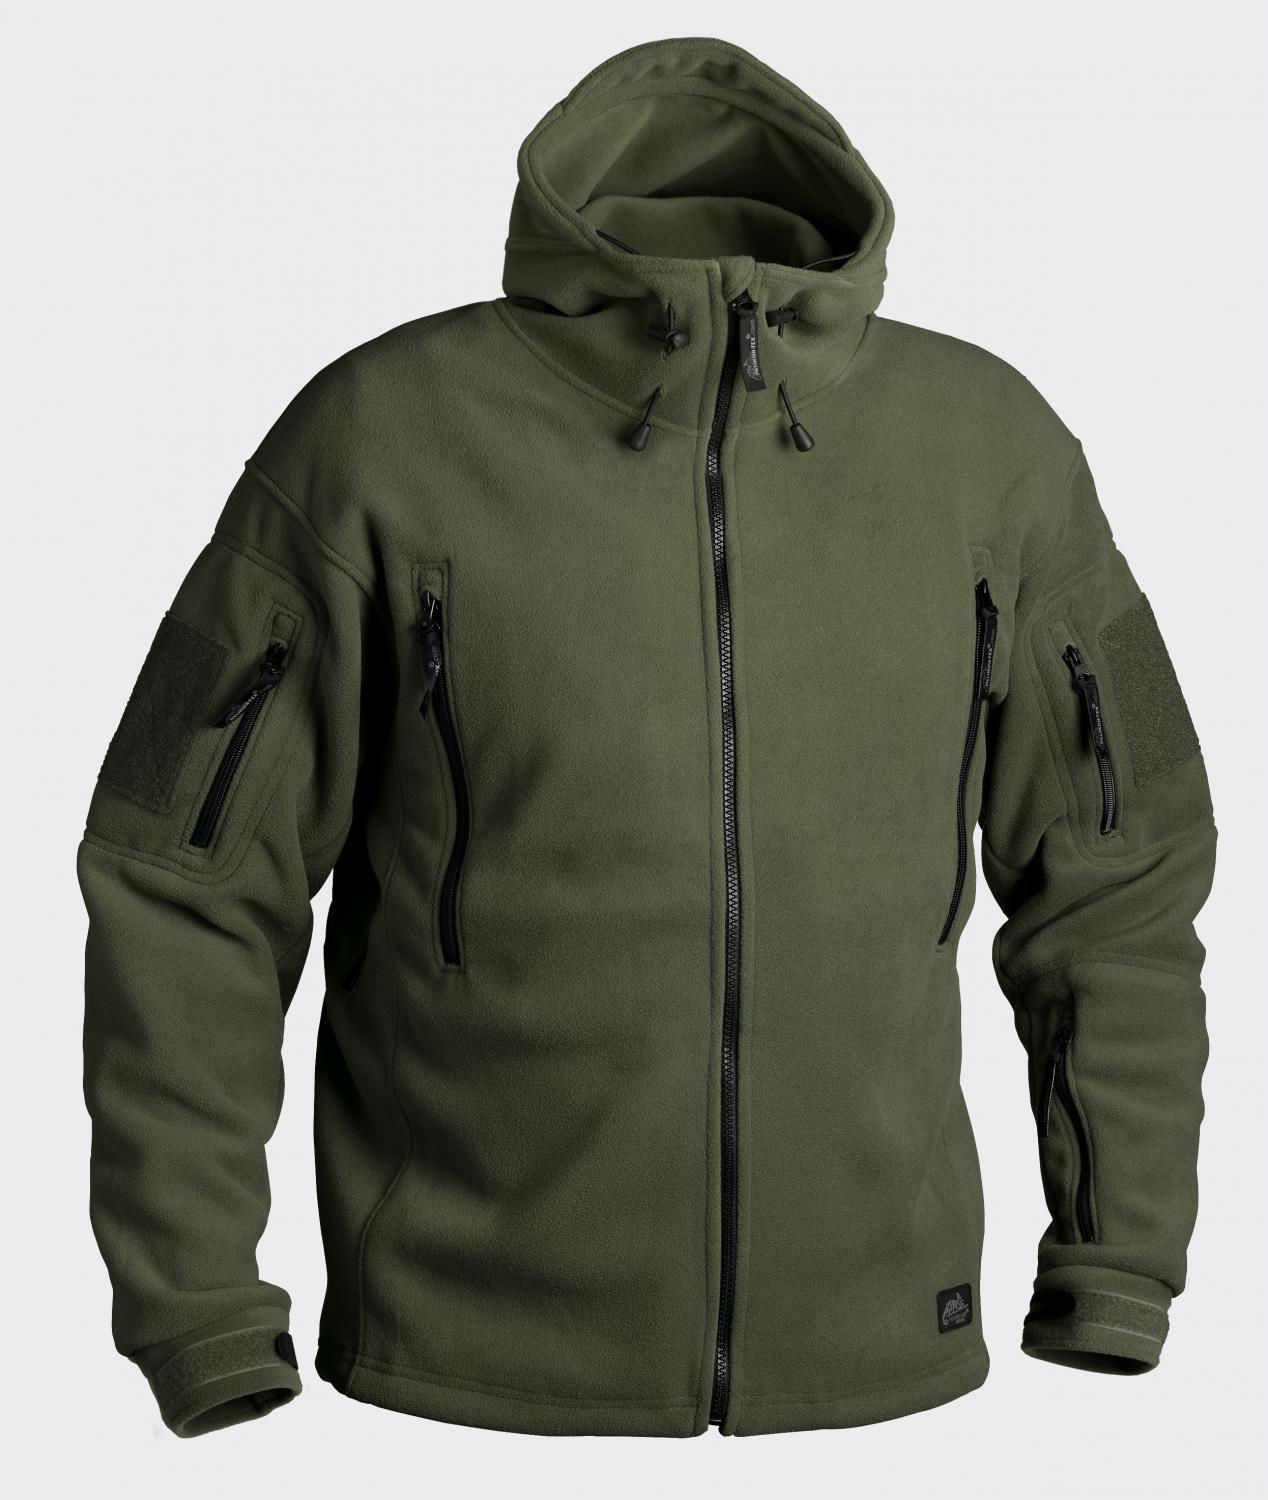 PATRIOT - Double Fleece Olive Green